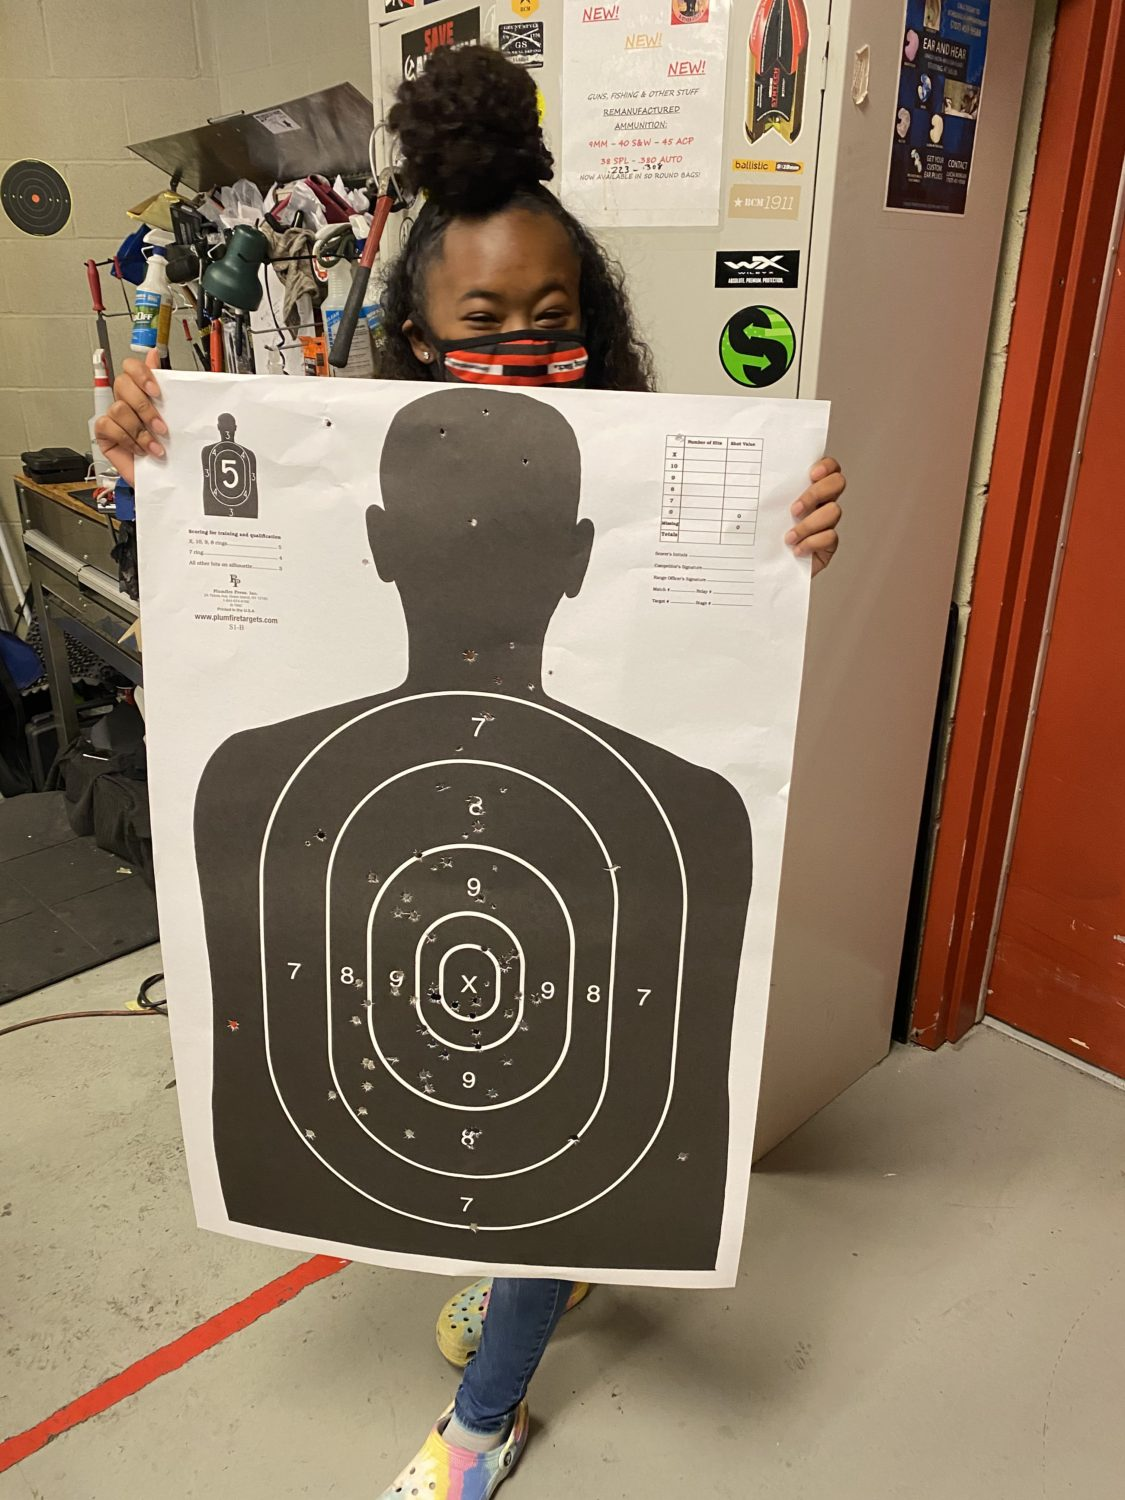 Xion-with-shooting-target-after-1st-lesson-0720, My first gun class and day at the range, Culture Currents